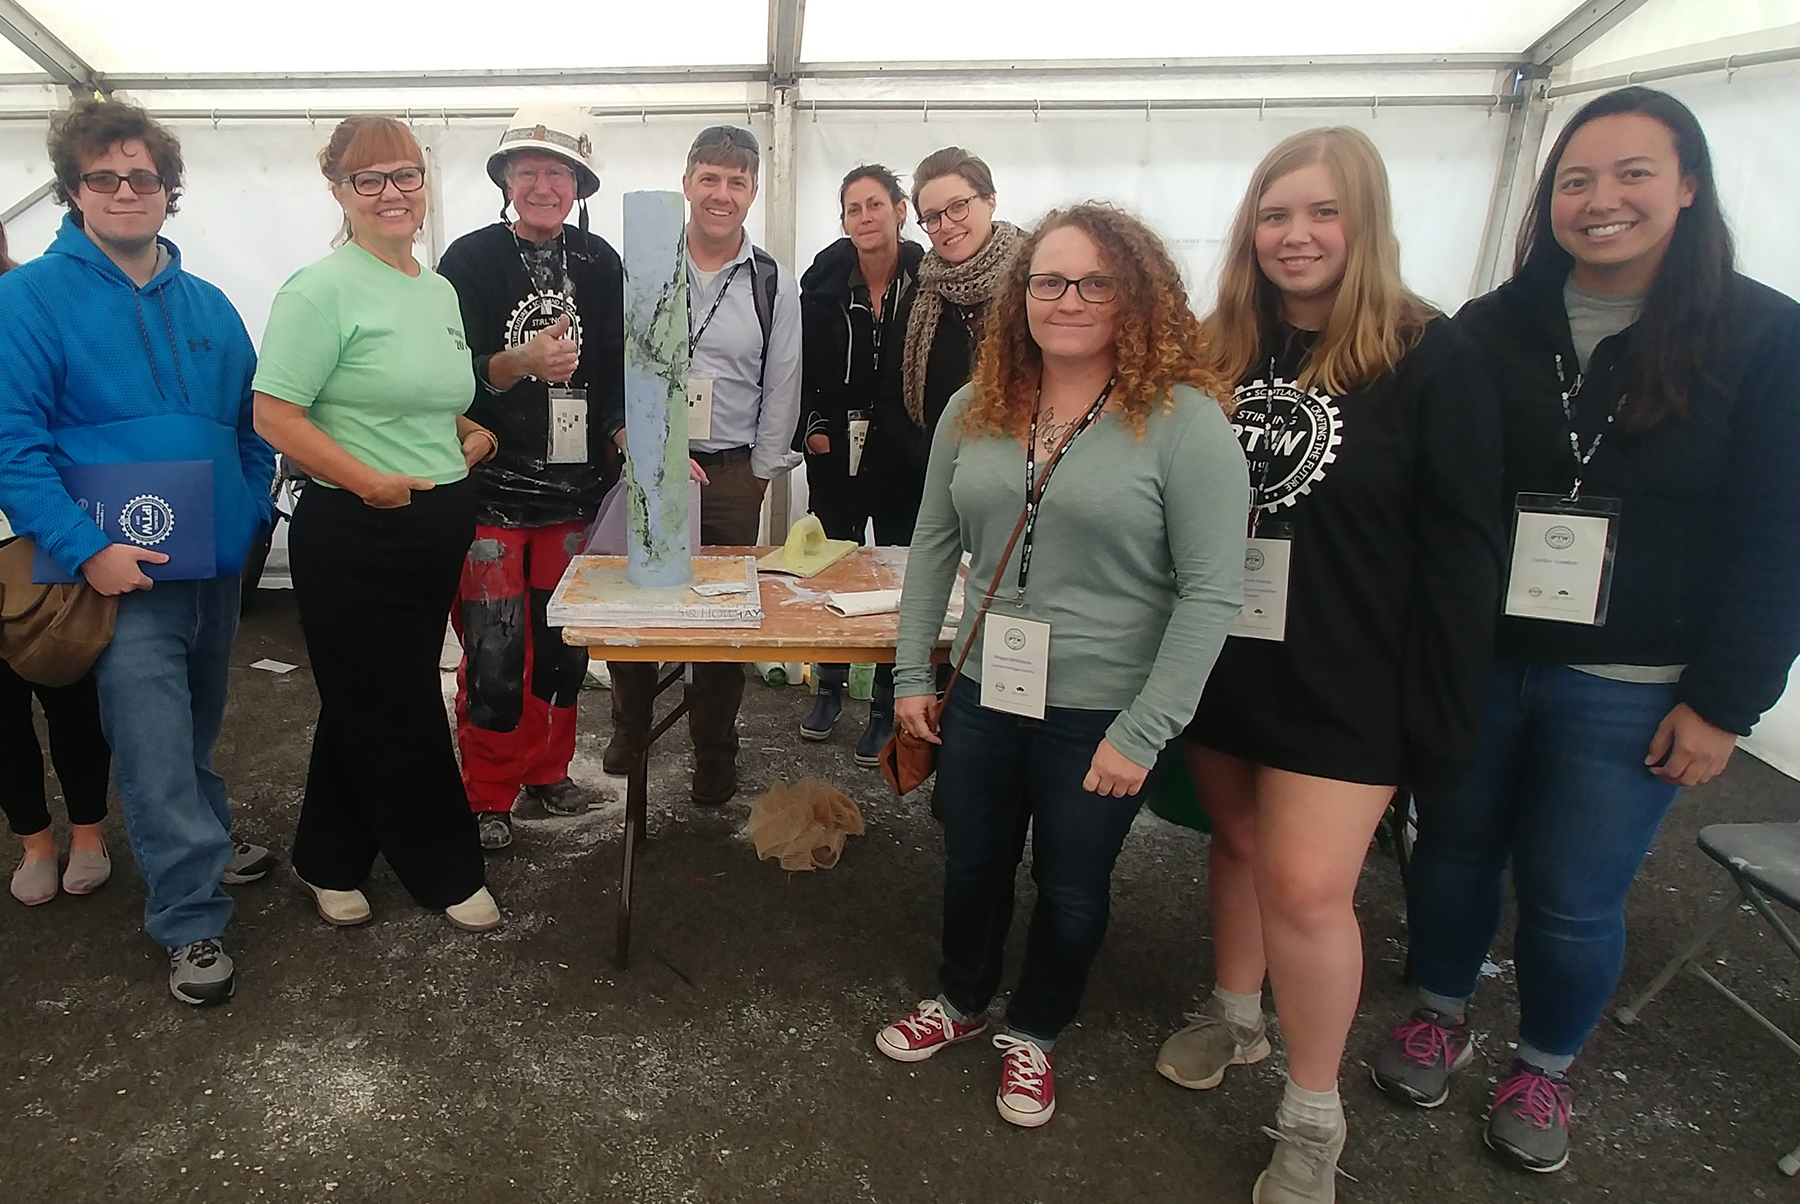 STC HP group under tent